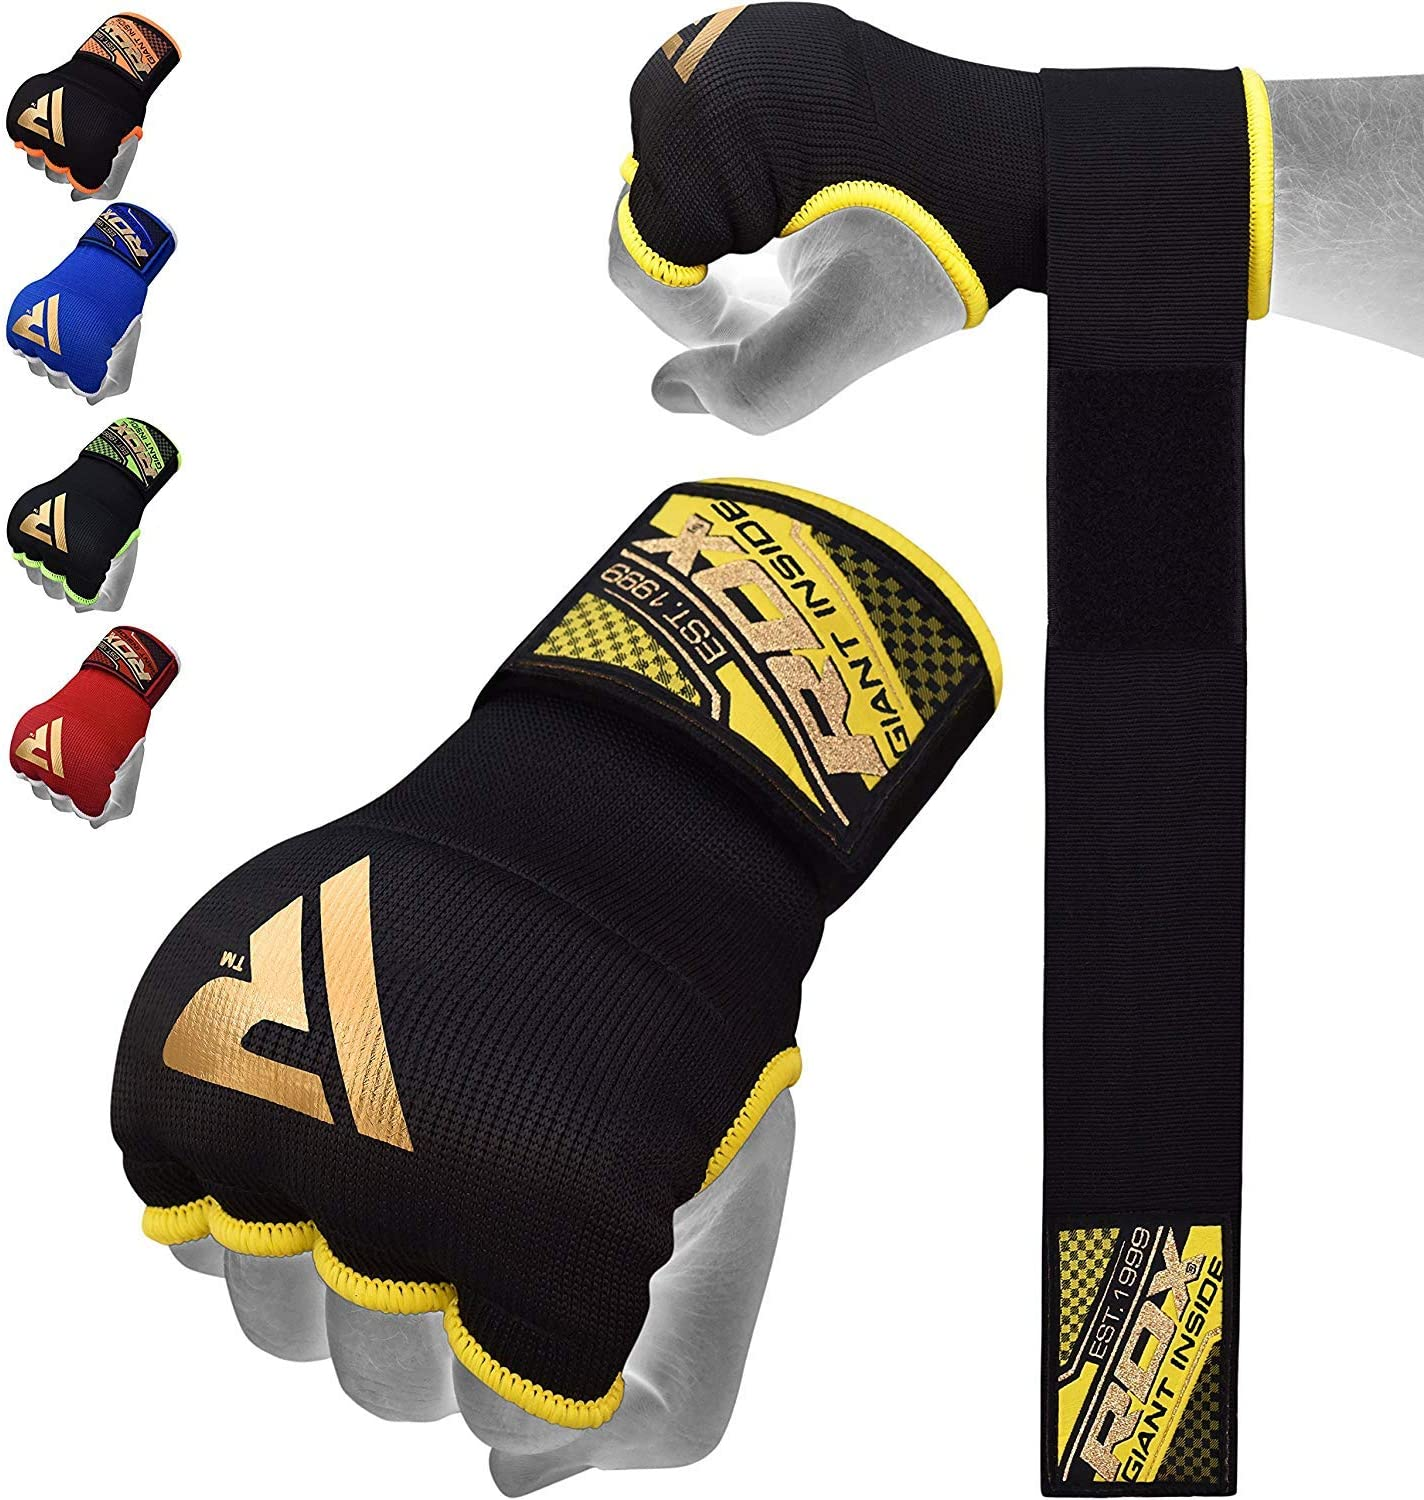 Hand Wraps Inner Gloves Fist Protector Wrist Bandage Boxing Muay Thai Palm Strap